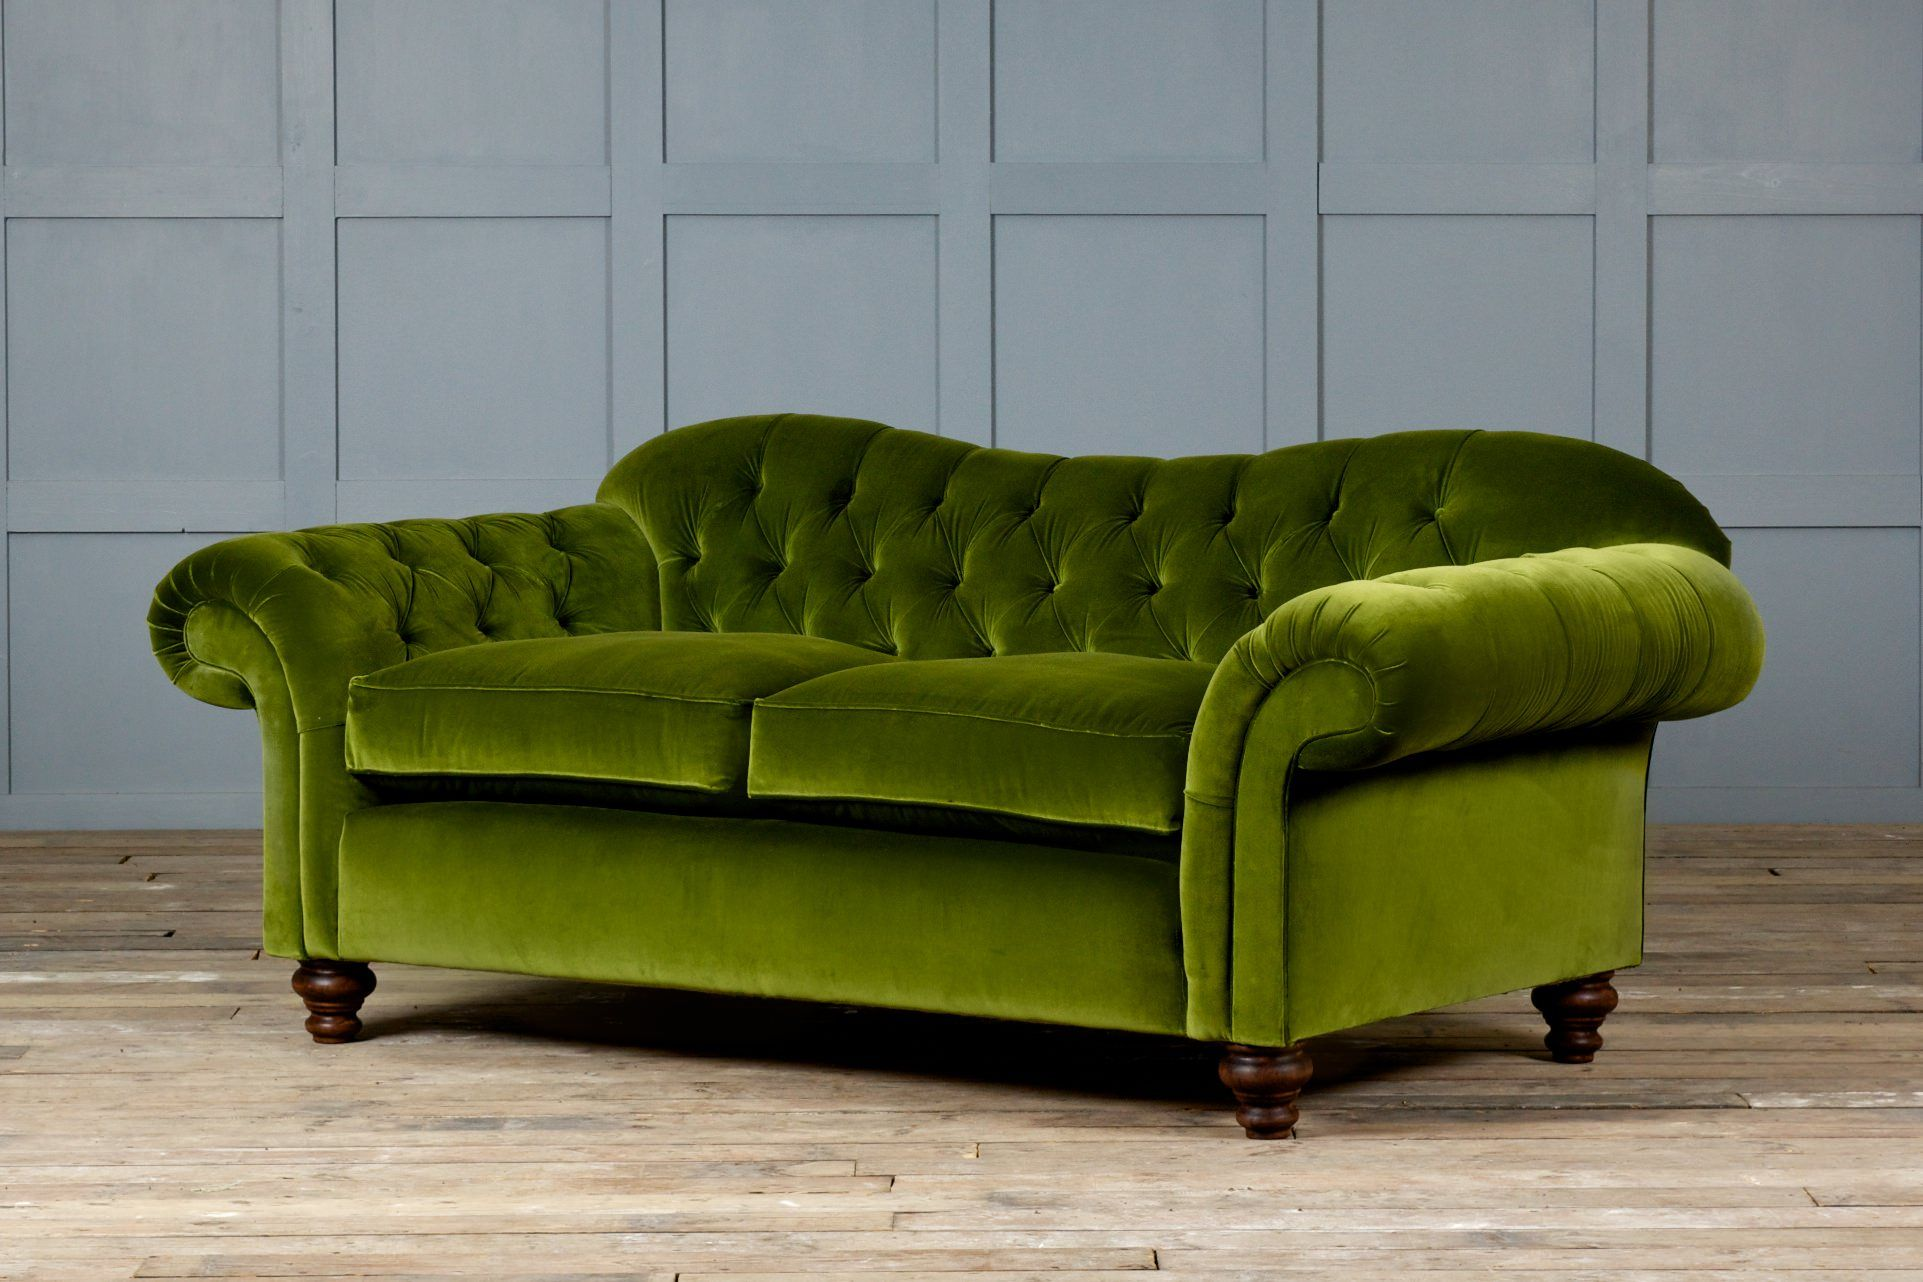 Please publish this Green Velvet Chesterfield Sofa picture for